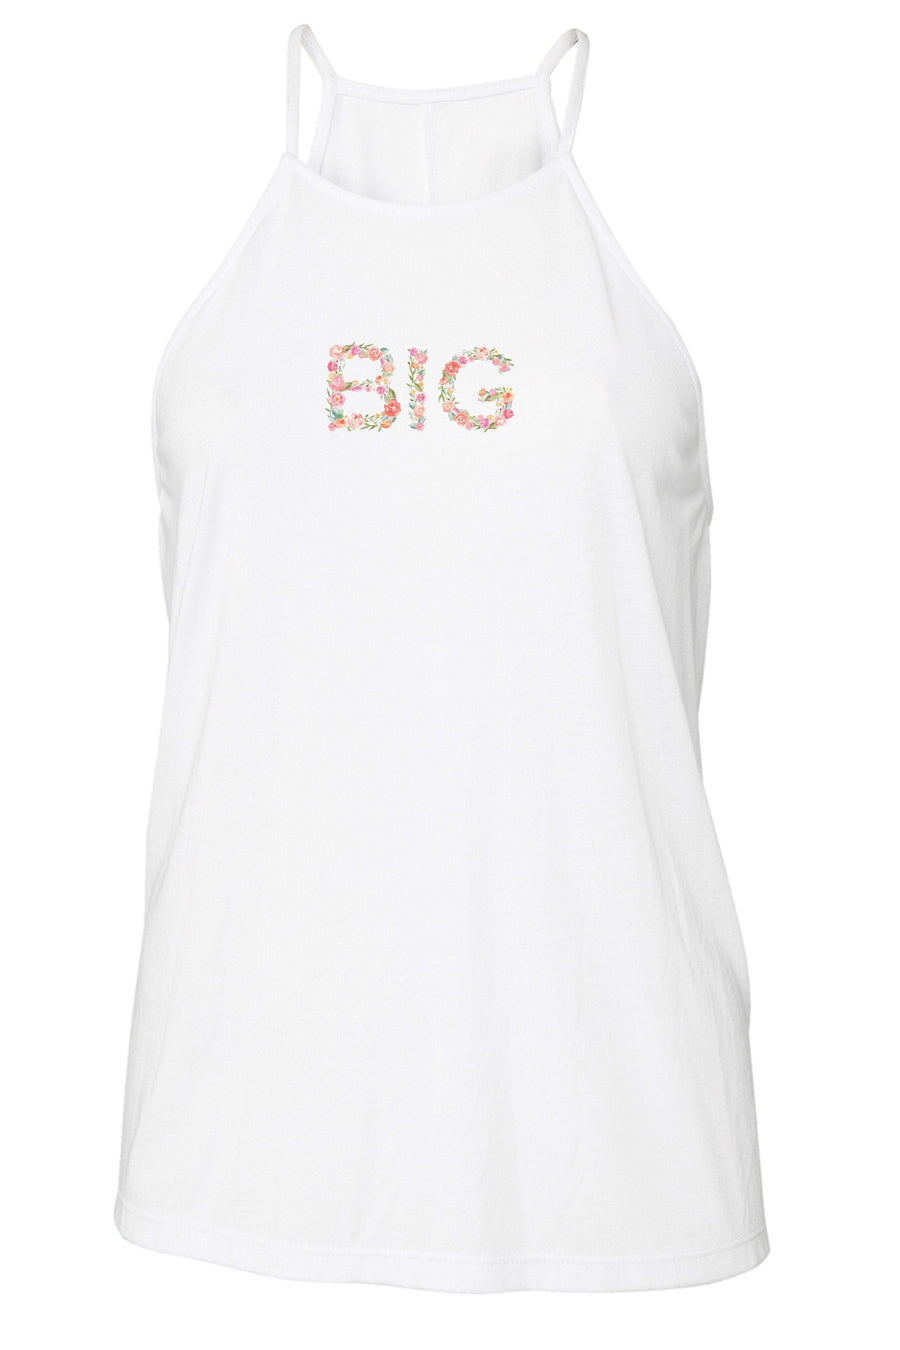 Big Little Floral Letters Tank - Bella Flowy High Neck, Ladies, Sunny and Southern, - Sunny and Southern,